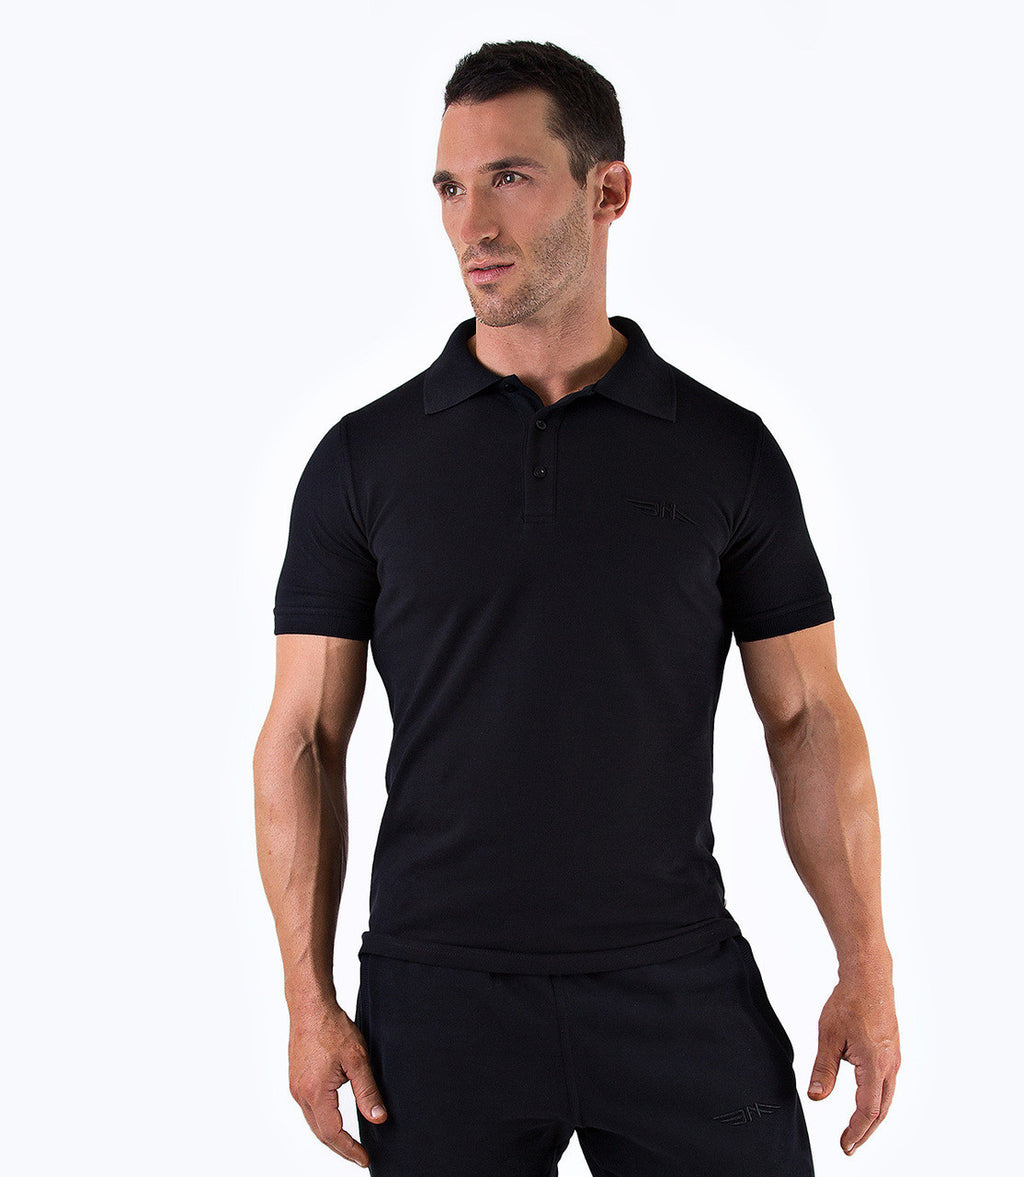 MENS PREMIUM POLO SHIRT - BLACK